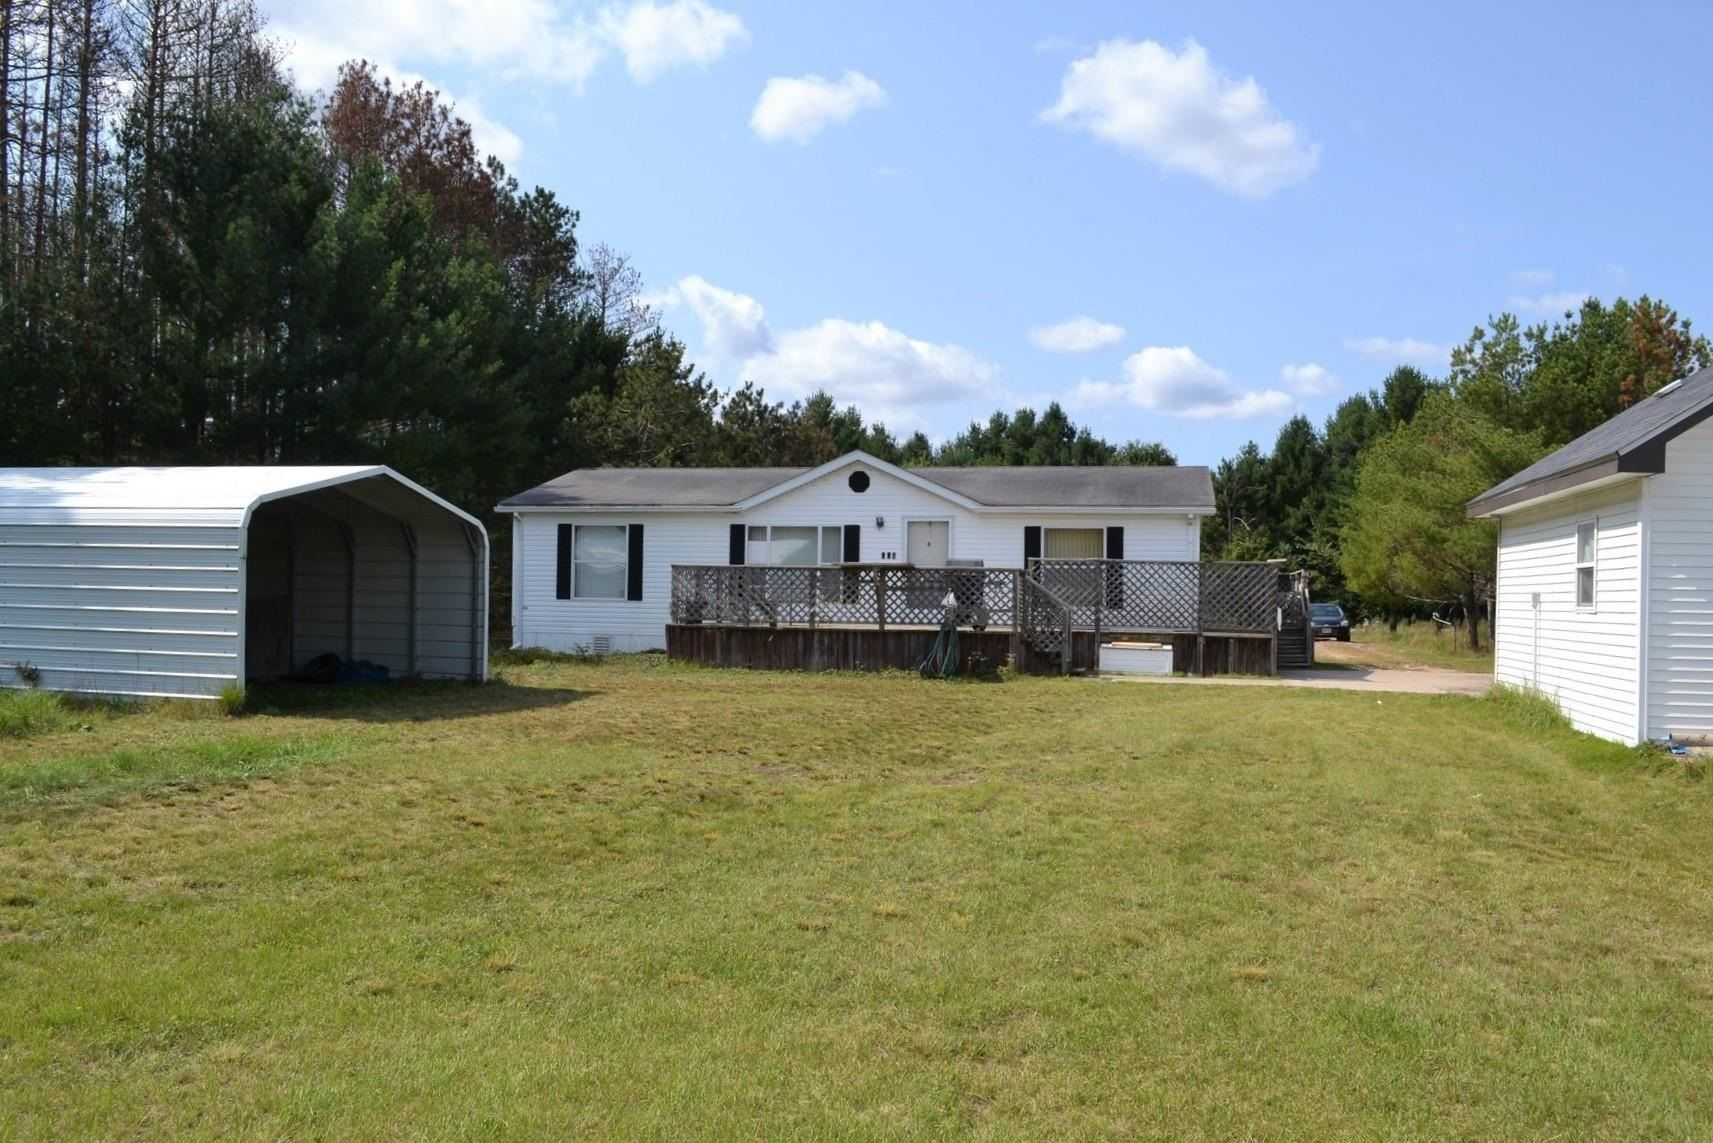 944 13th Ave, Arkdale, WI 54613 - #: 1919544